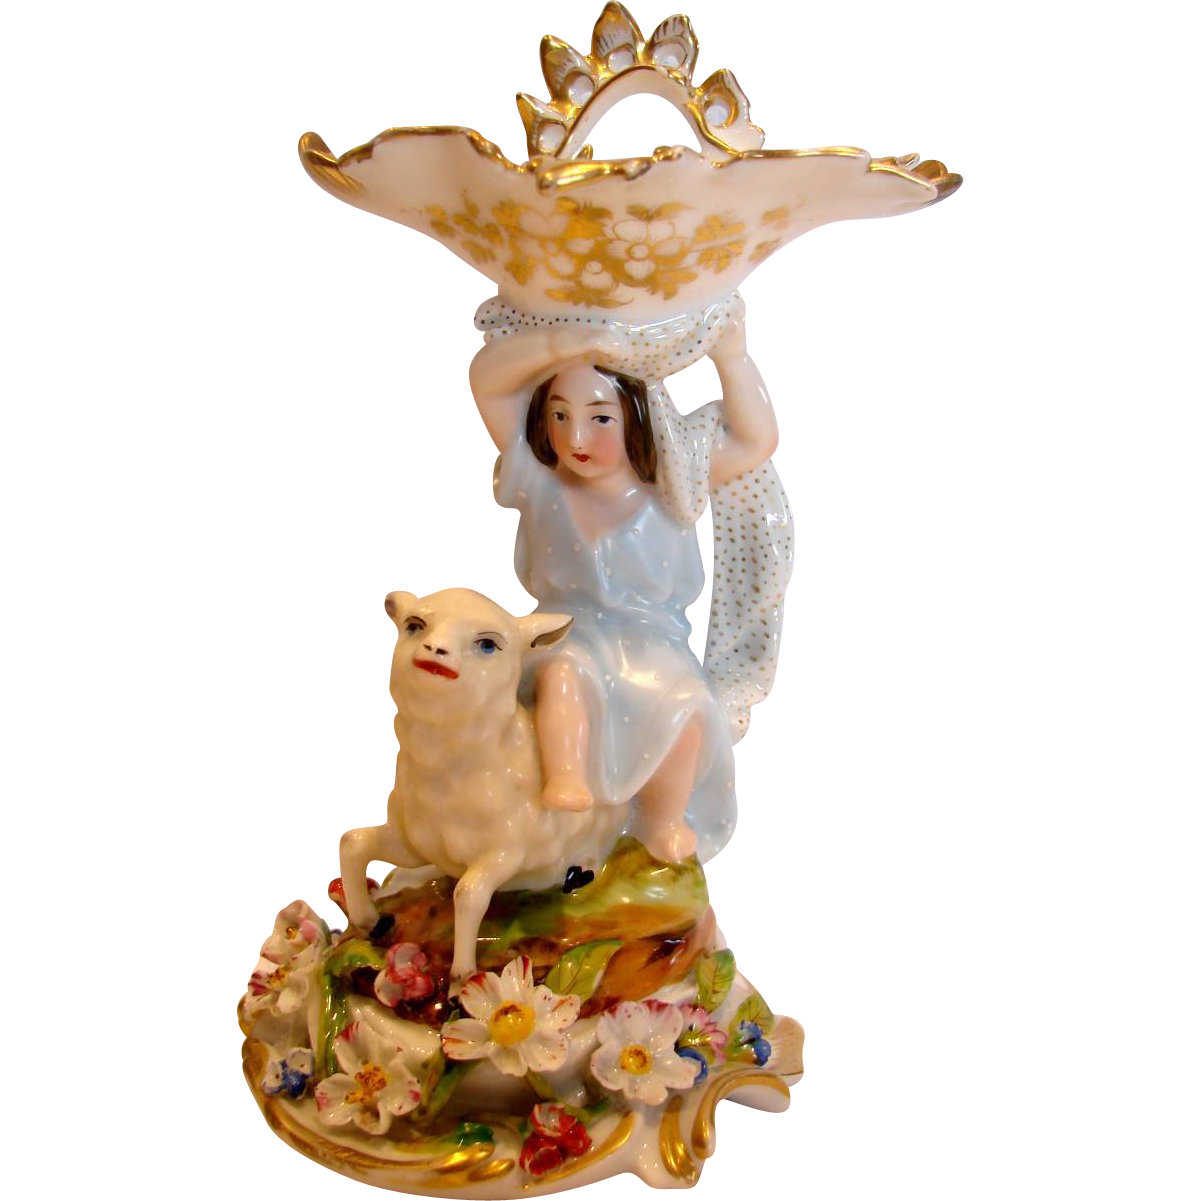 Belgium Andenne Jules Doth�e-Jamar Figurine Girl on Sheep Applied Flowers c 1863 - 1864